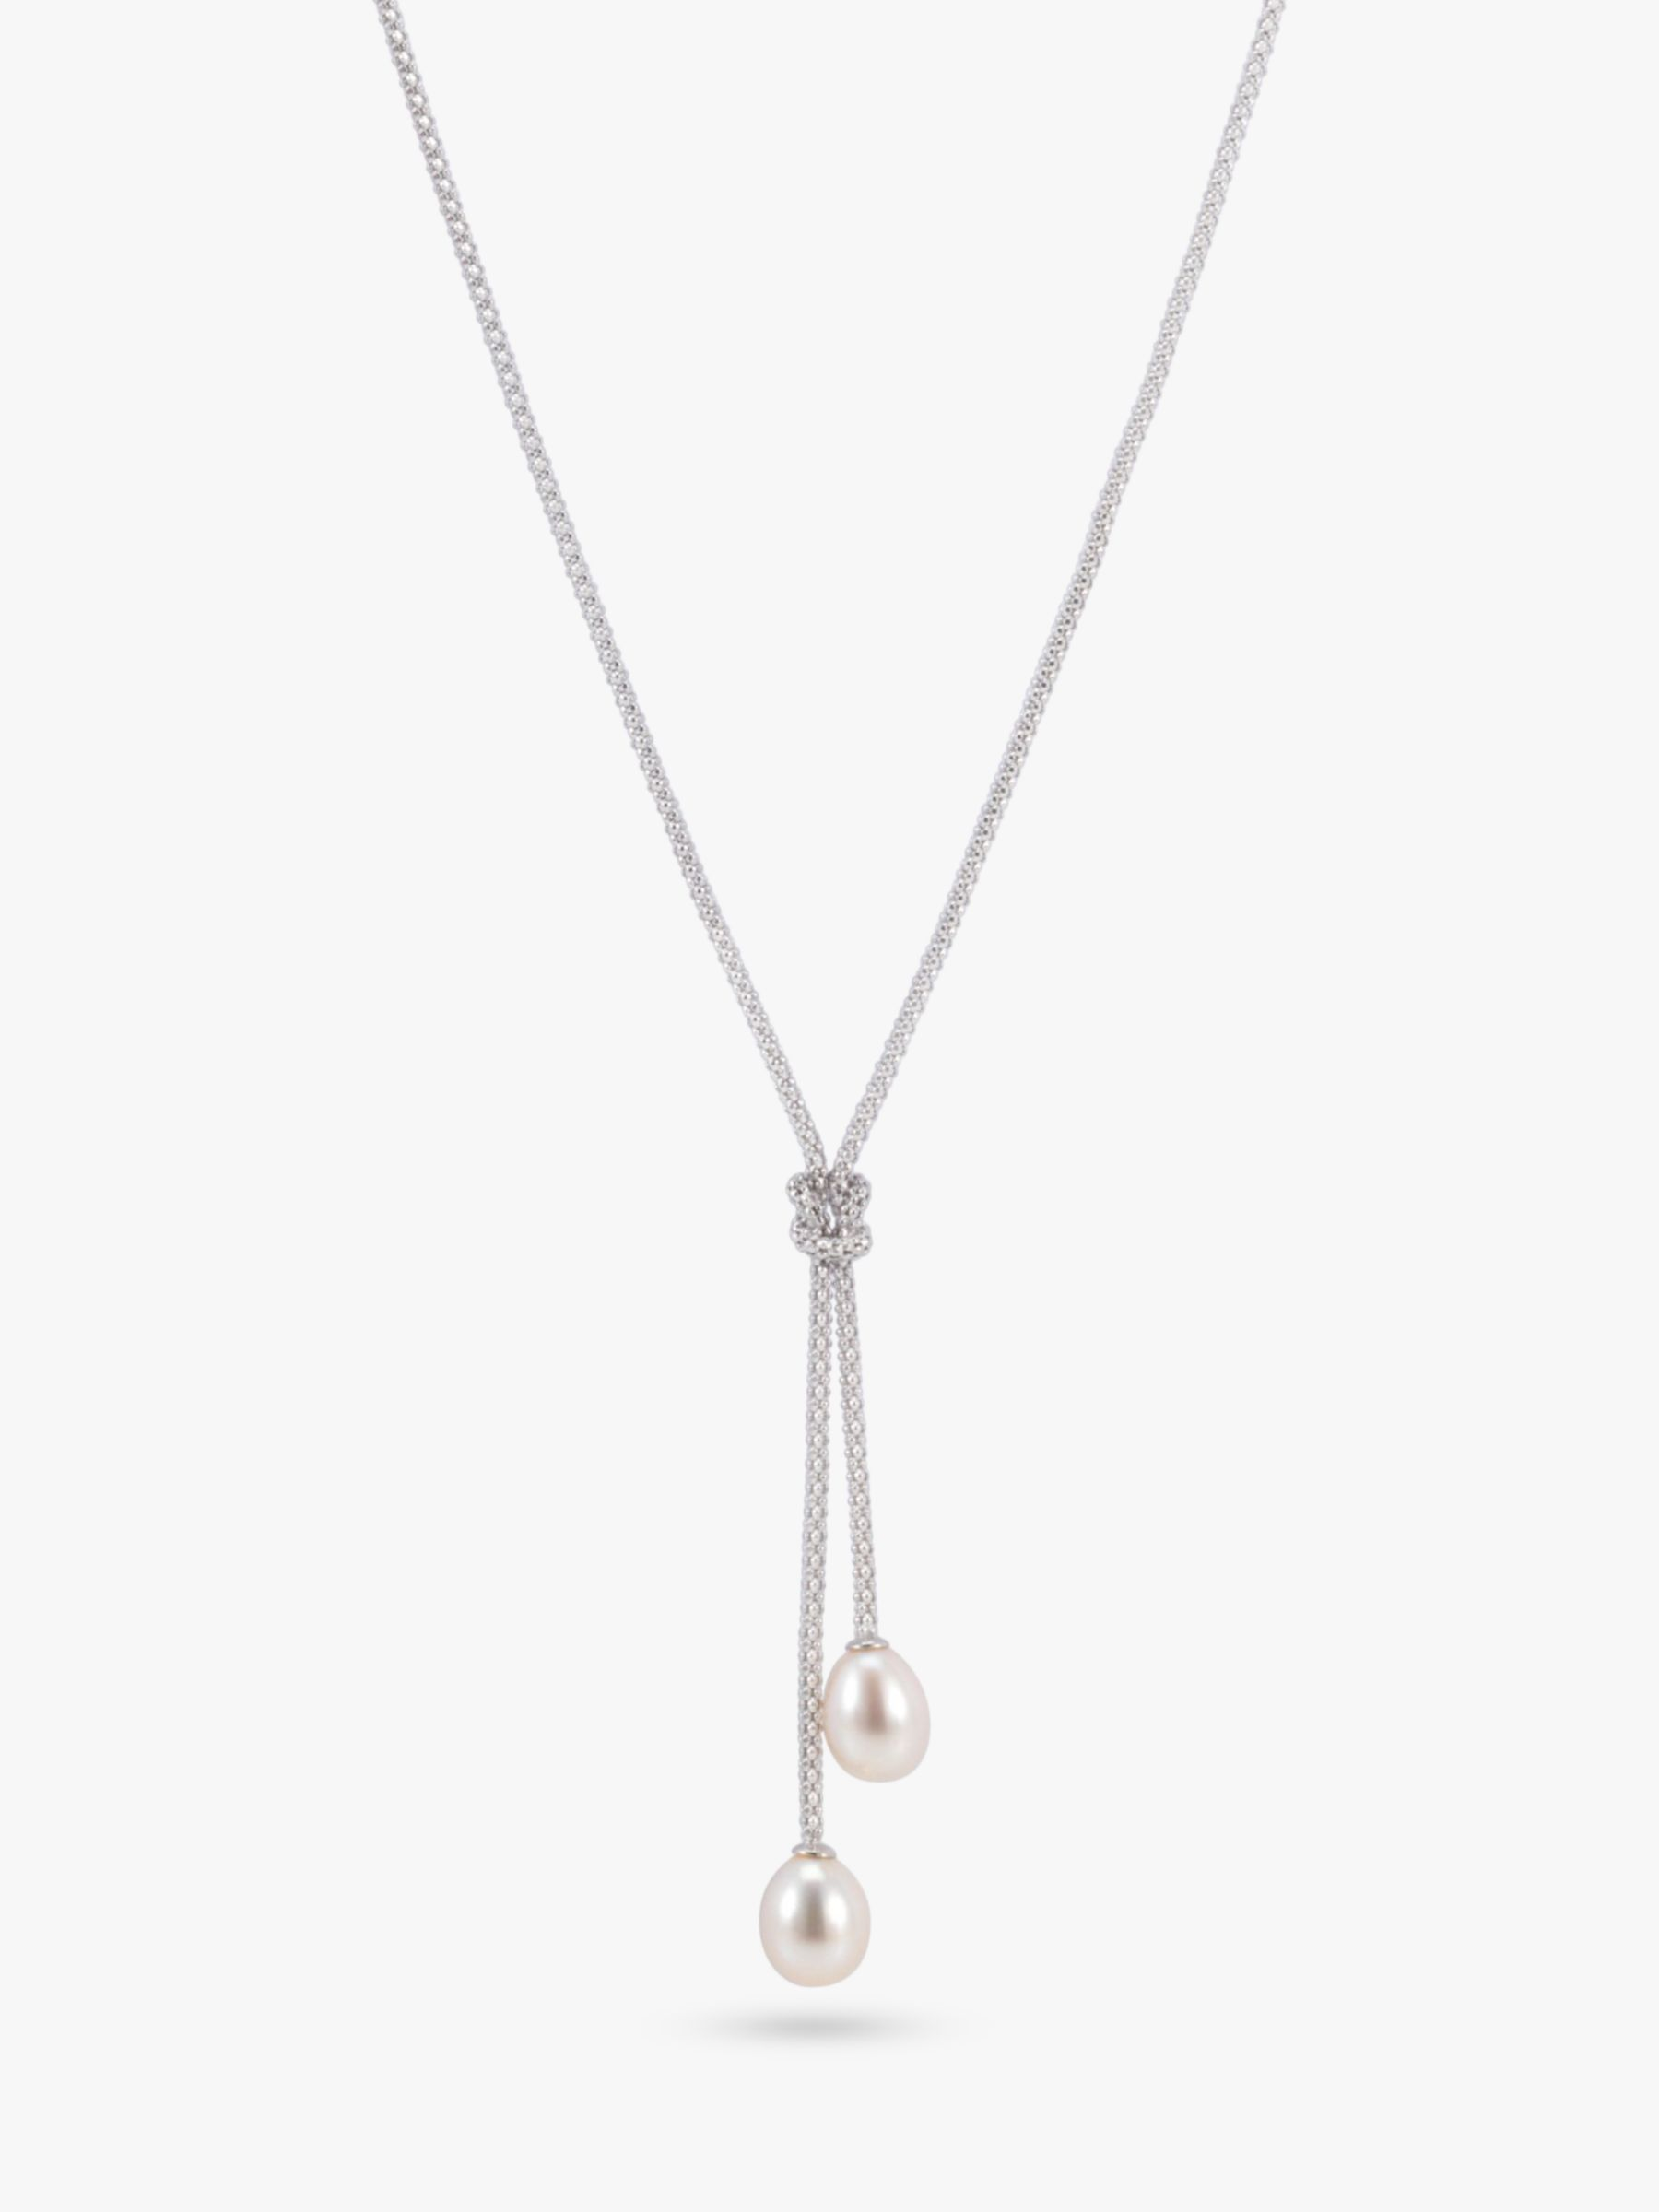 Lido Pearls Y Shape Knotted Drop Necklace